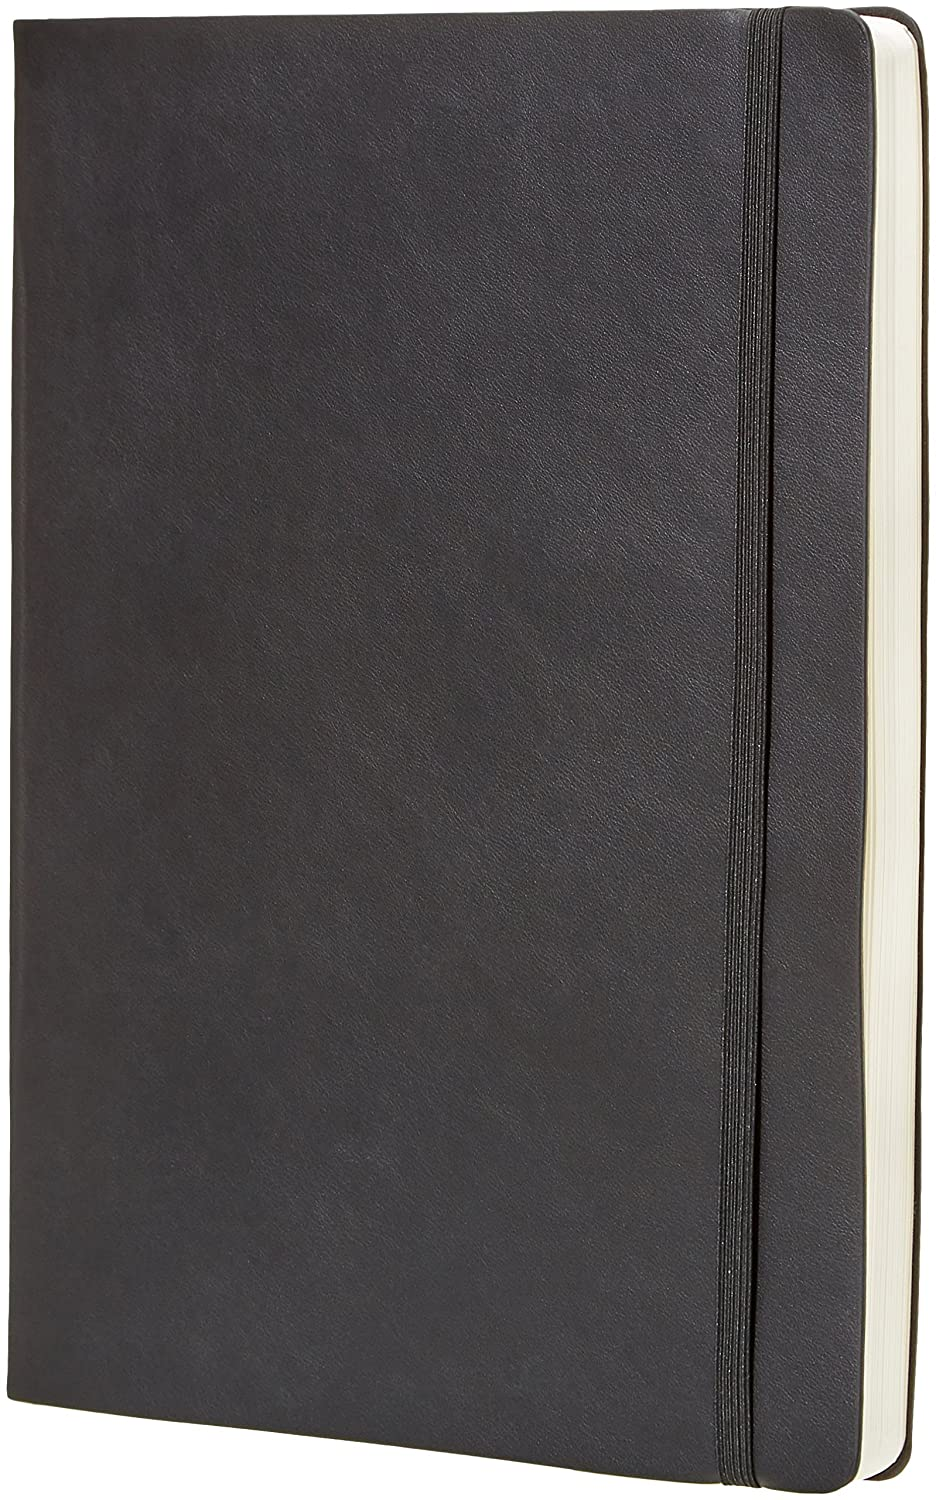 "AmazonBasics Daily Planner and Journal - 8.5"" x 11"", Soft Cover"